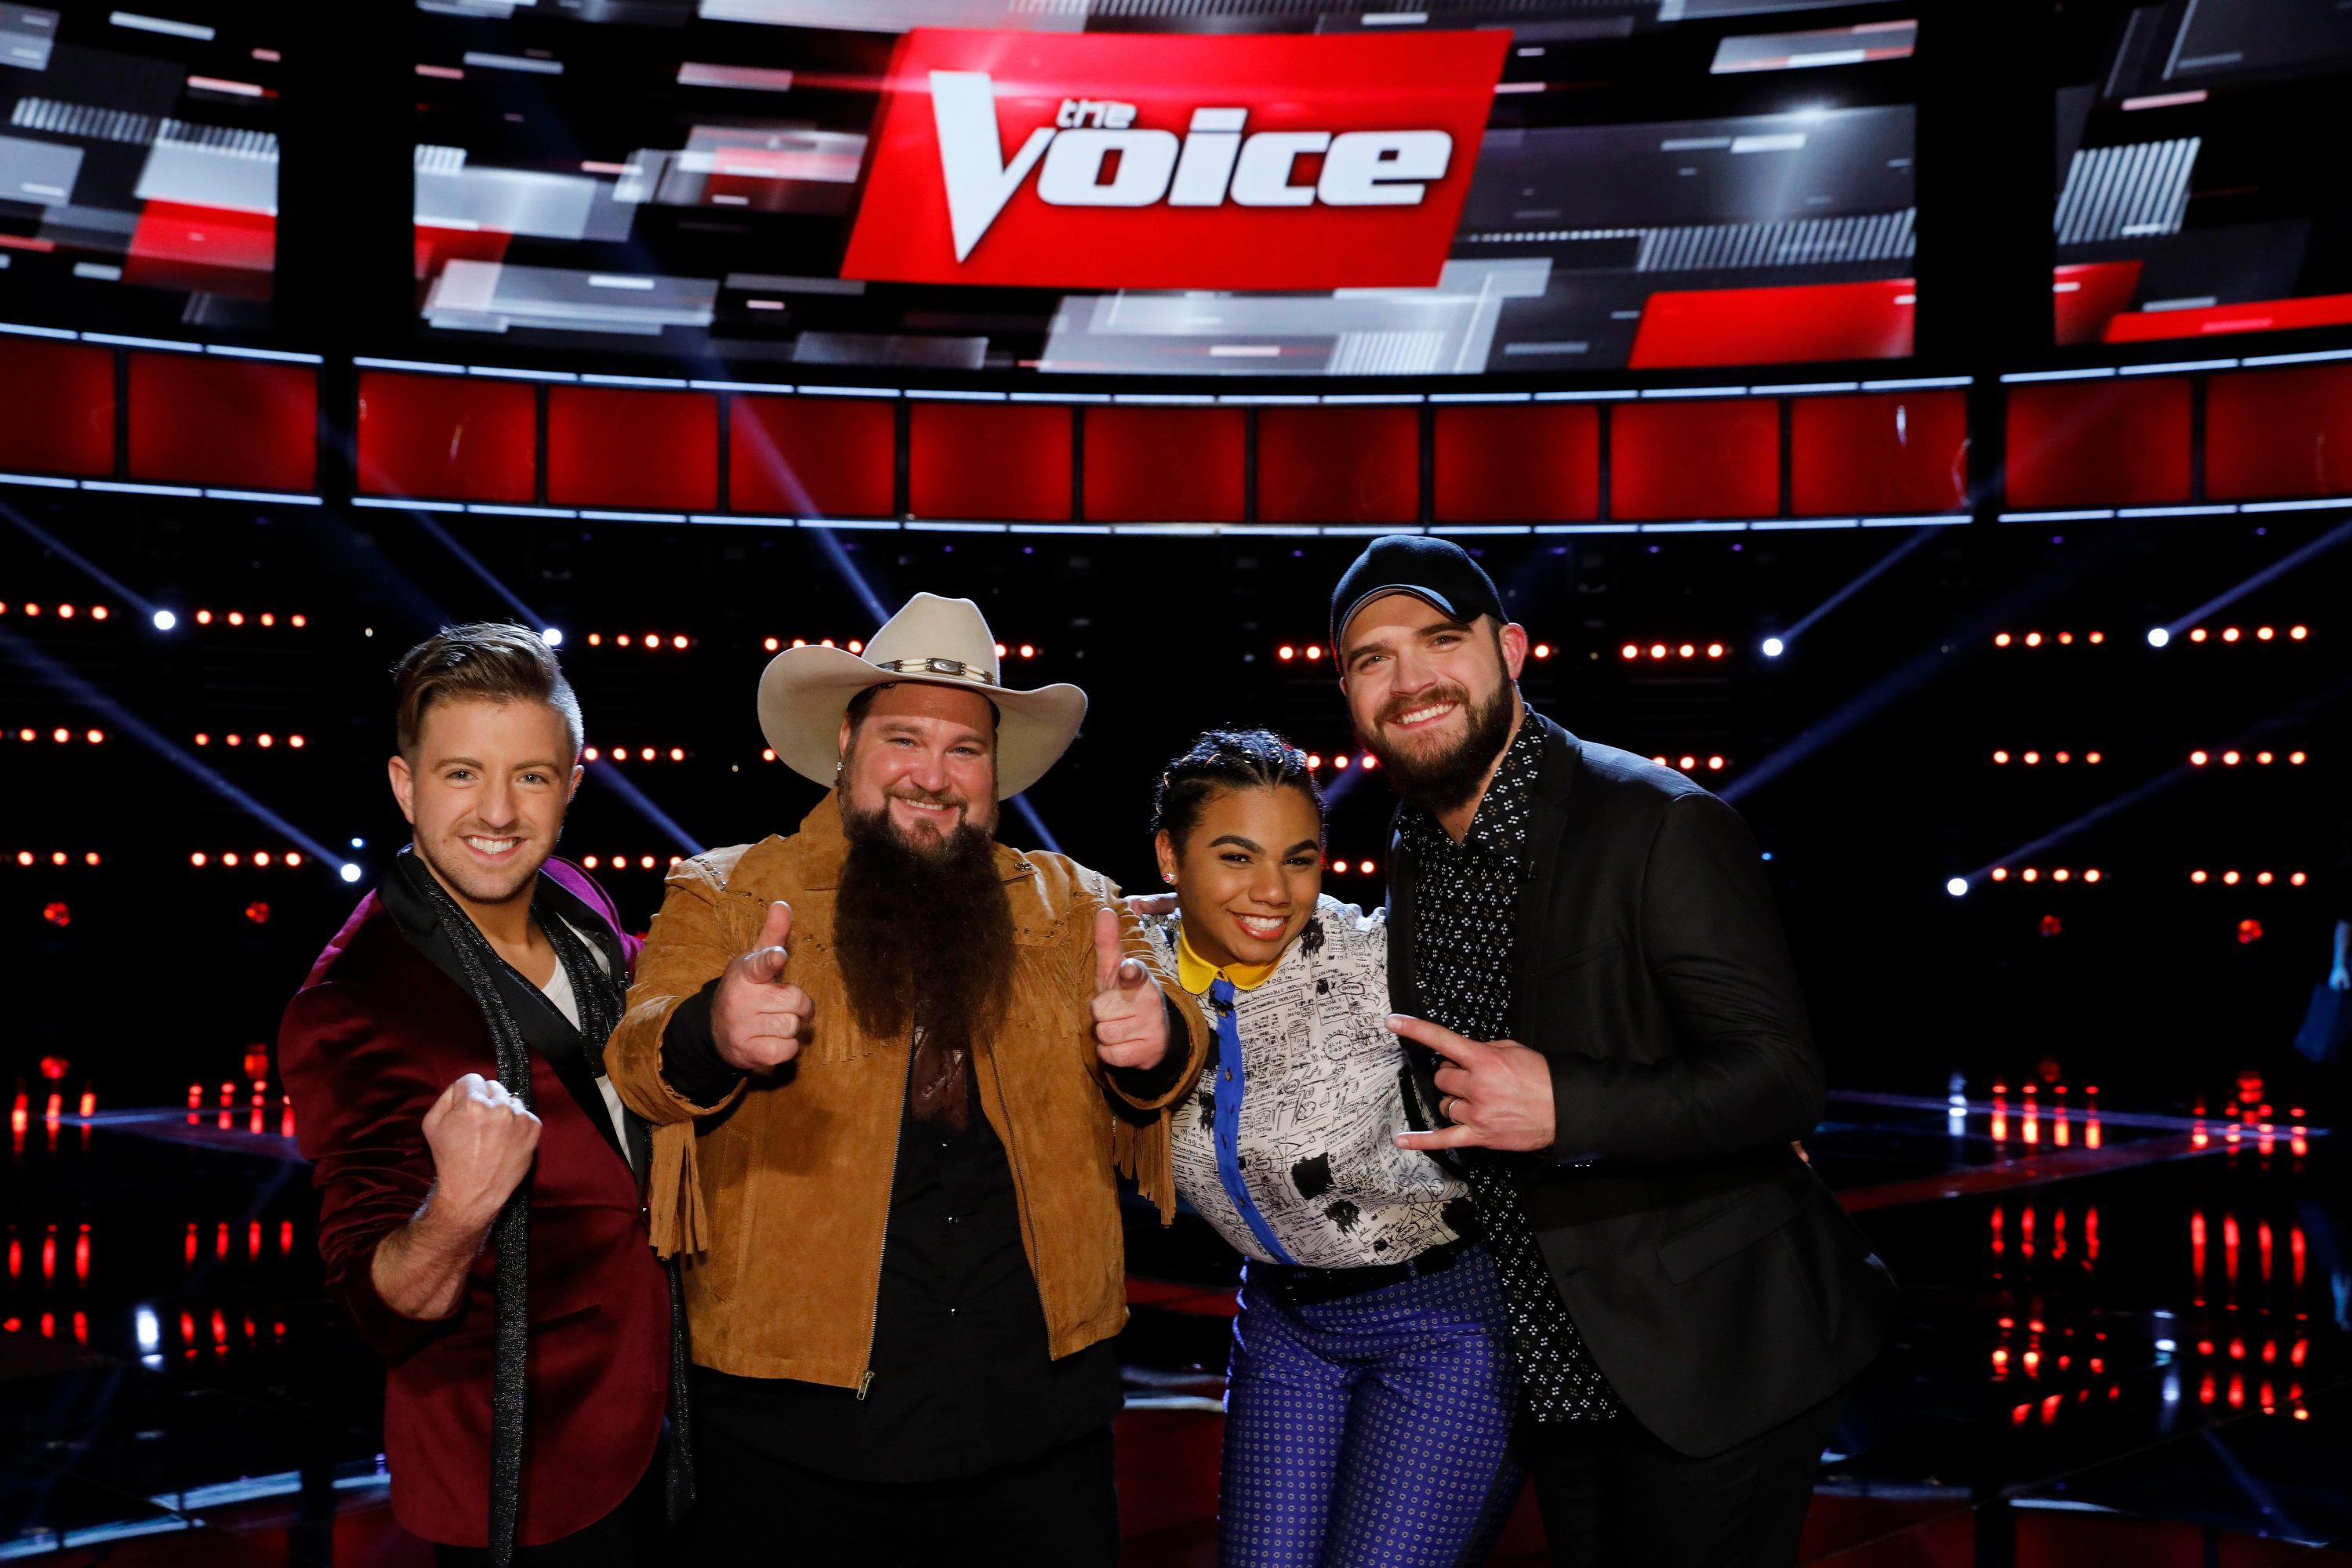 THE VOICE -- 'Live Semi Finals'  Episode: 1117B -- Pictured: (l-r) Billy Gilman, Sundance Head, We McDonald, Josh Gallagher -- (Photo by: Trae Patton/NBC/NBCU Photo Bank via Getty Images)